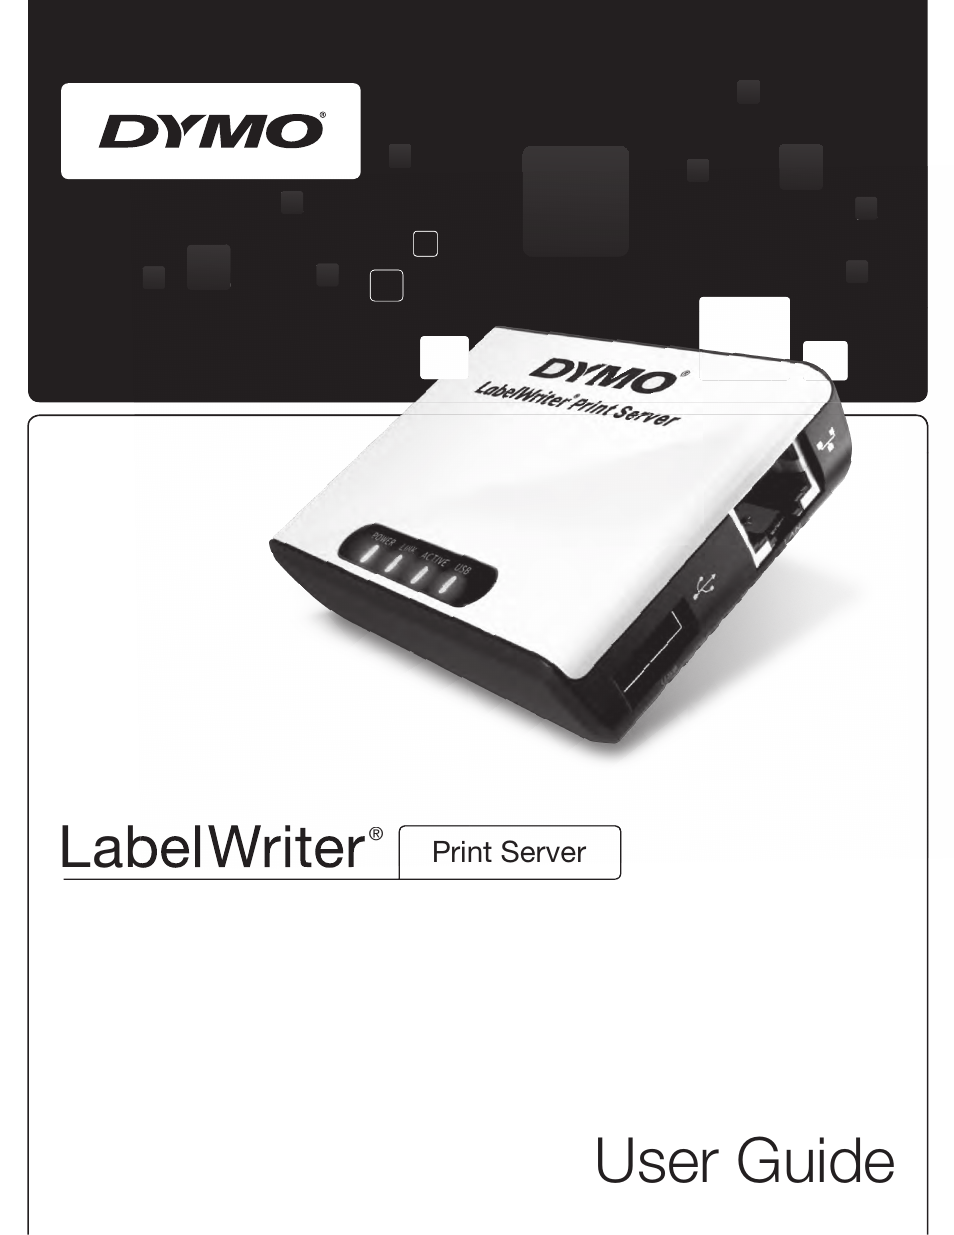 Dymo LabelWriter Print Server User Manual | 34 pages